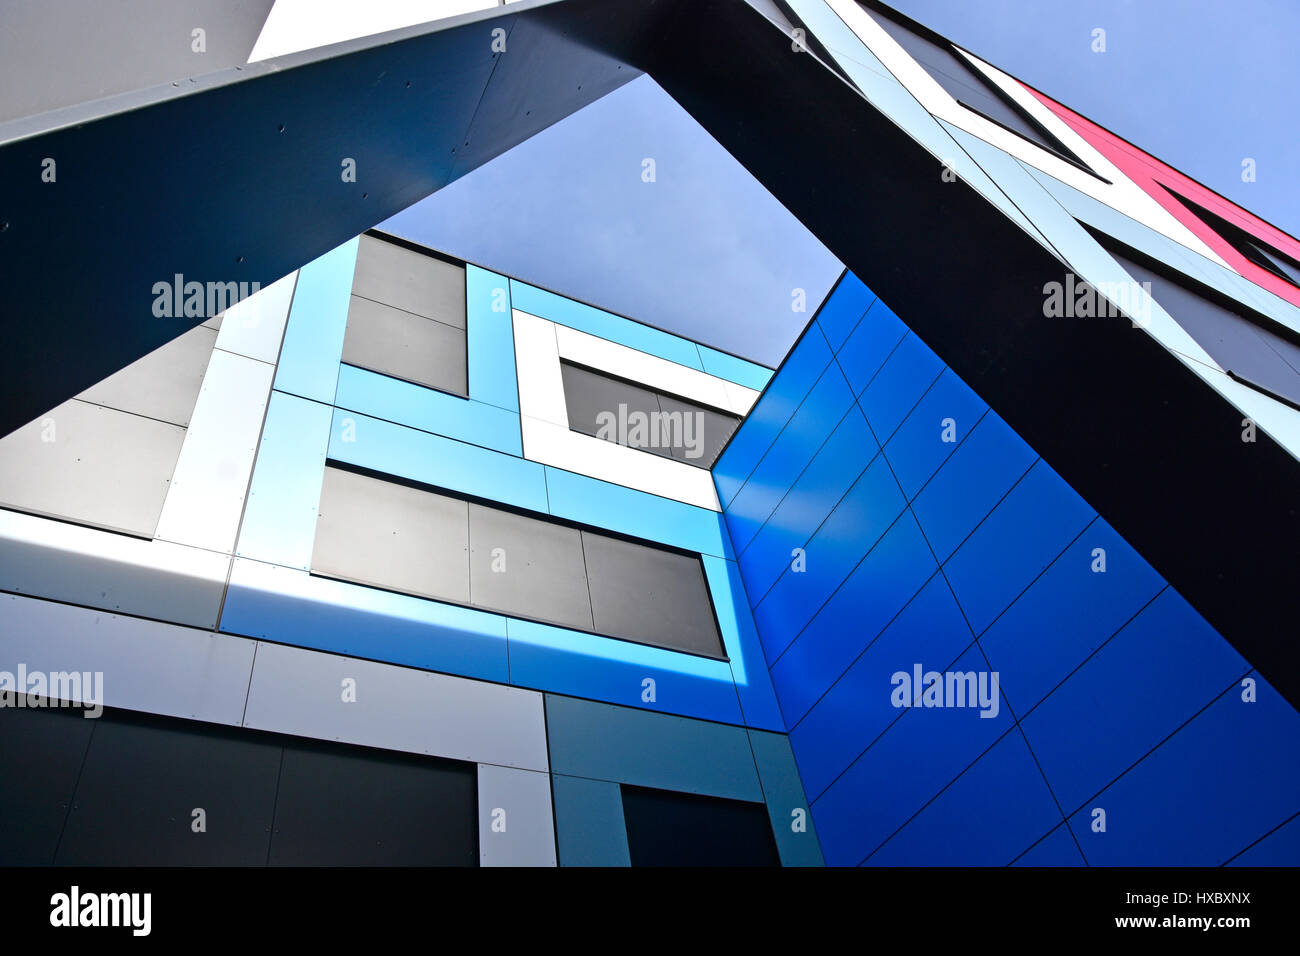 Modern architecture building & structure detail form abstract pattern shapes colour triangles rectangles and - Stock Image